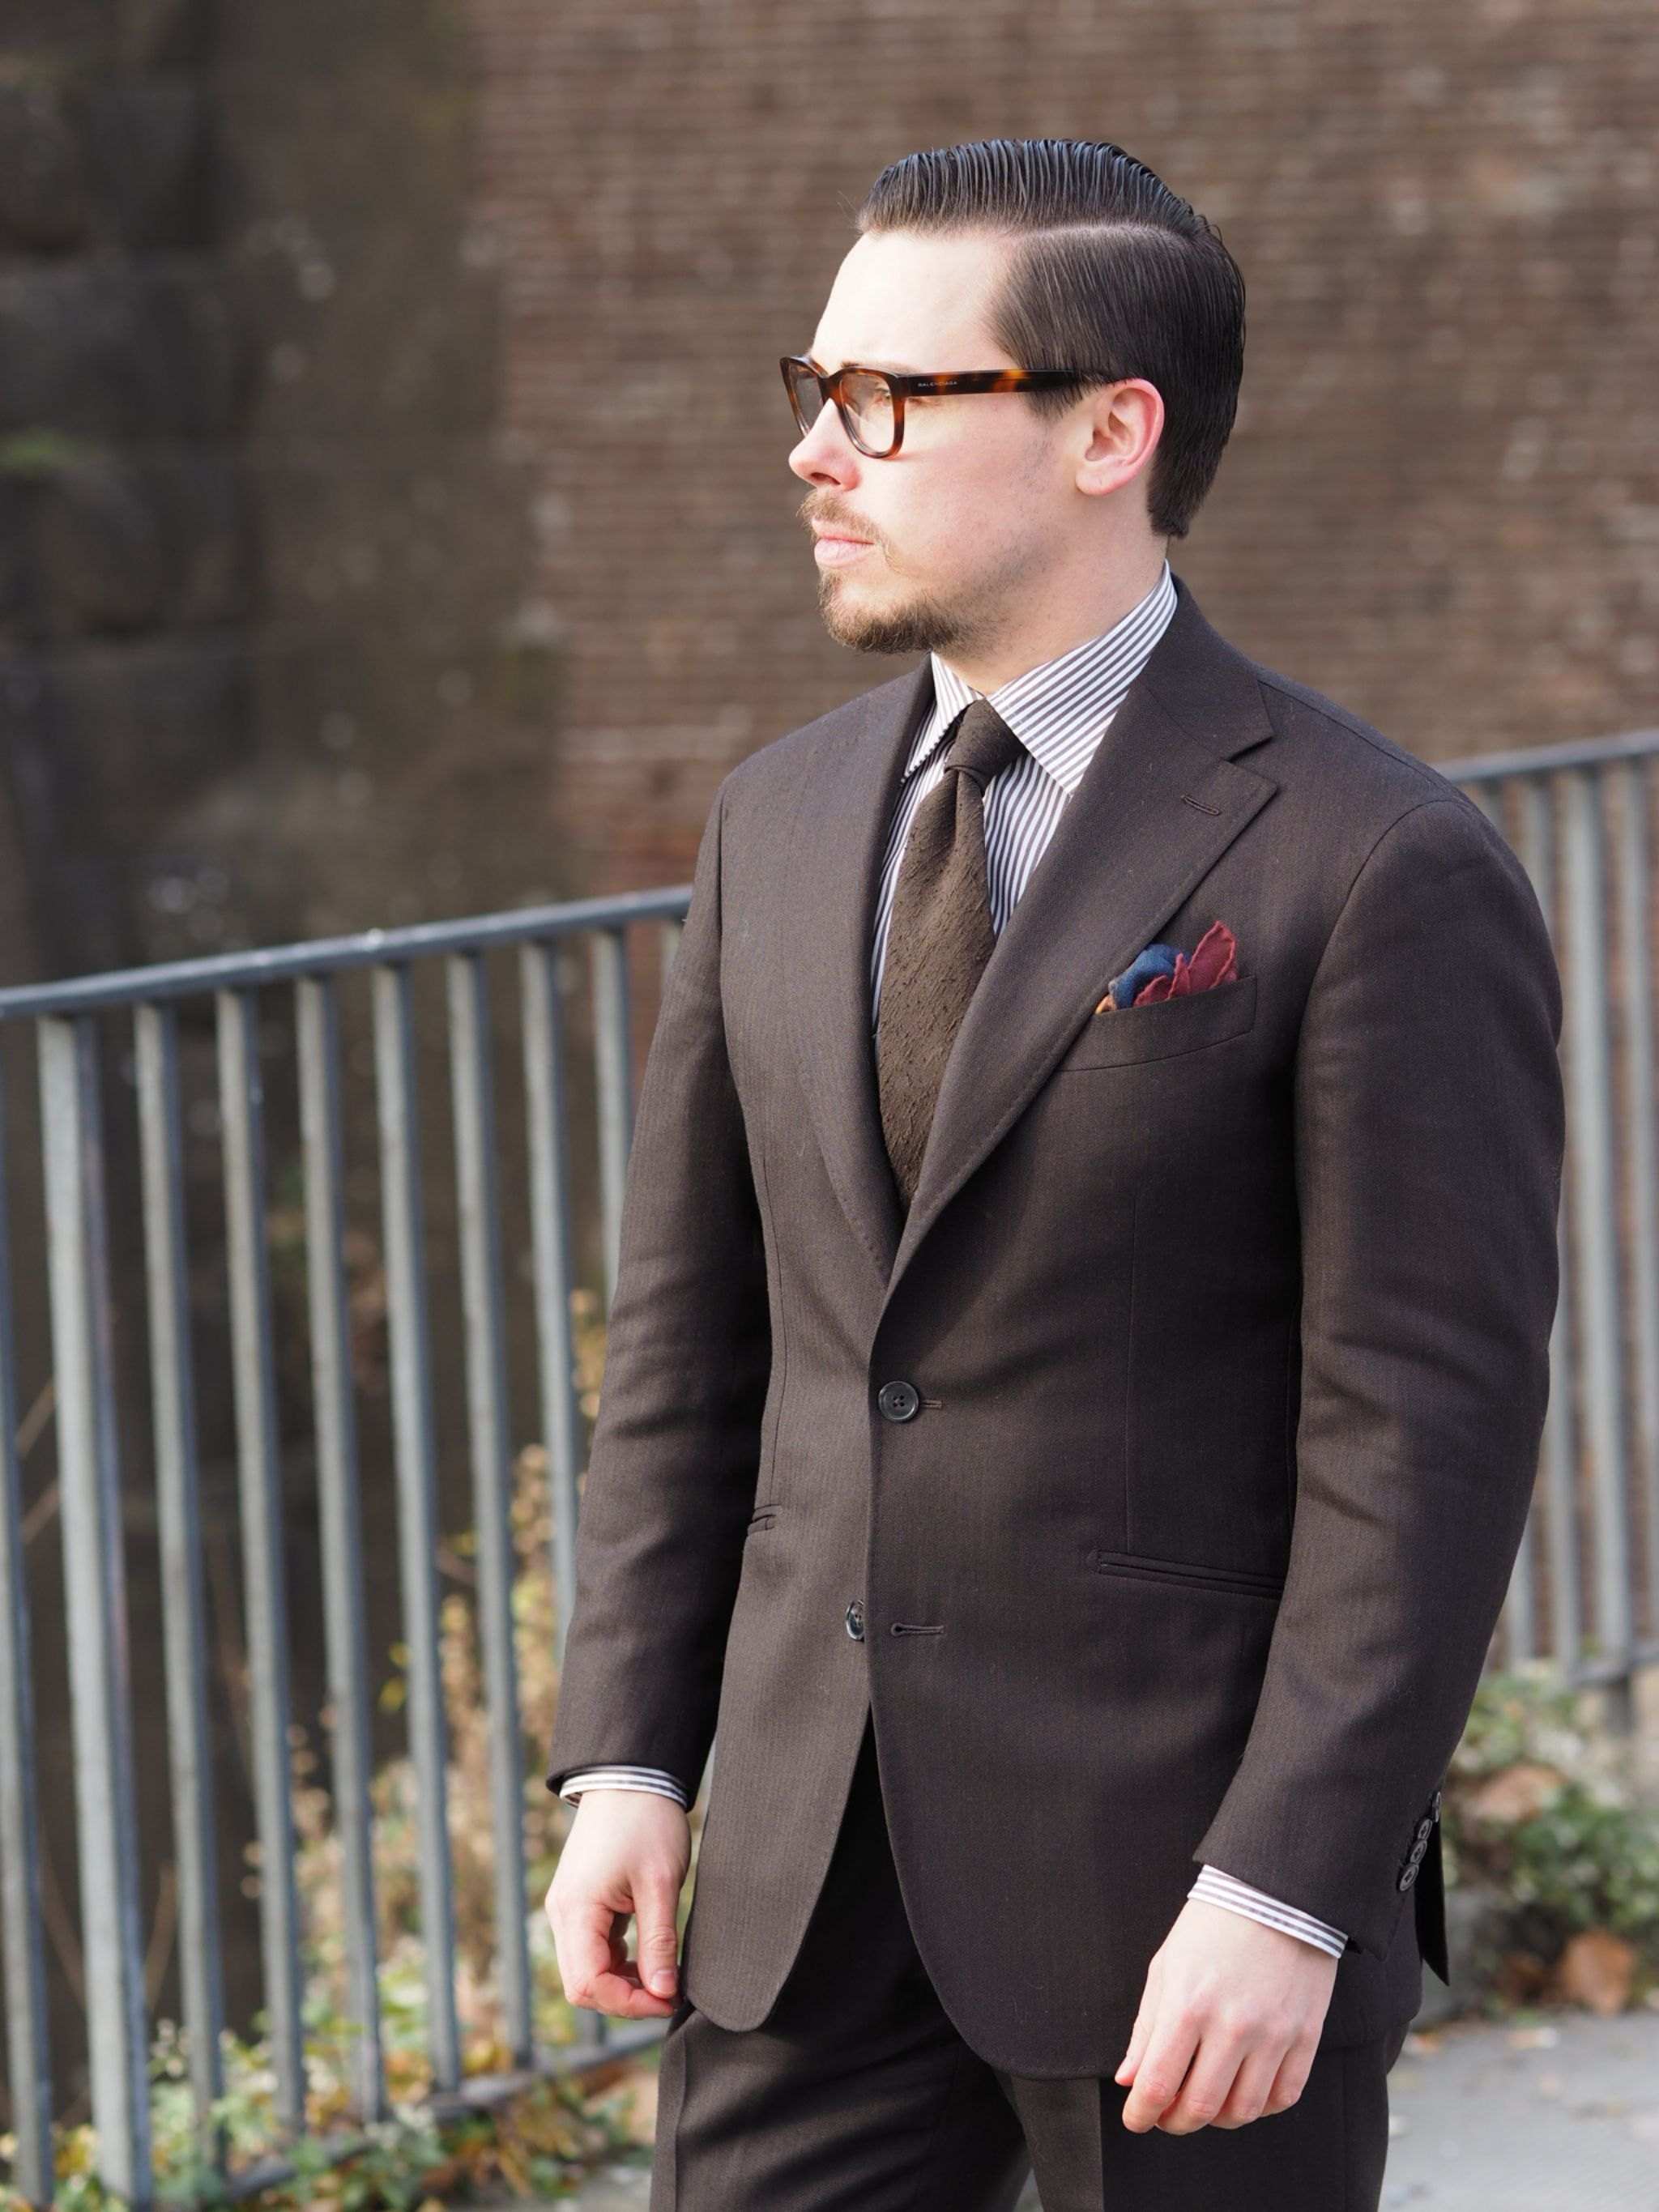 Pitti Uomo 91 DLA look book preview - brown wool suit with brown shantung silk tie and striped shirt